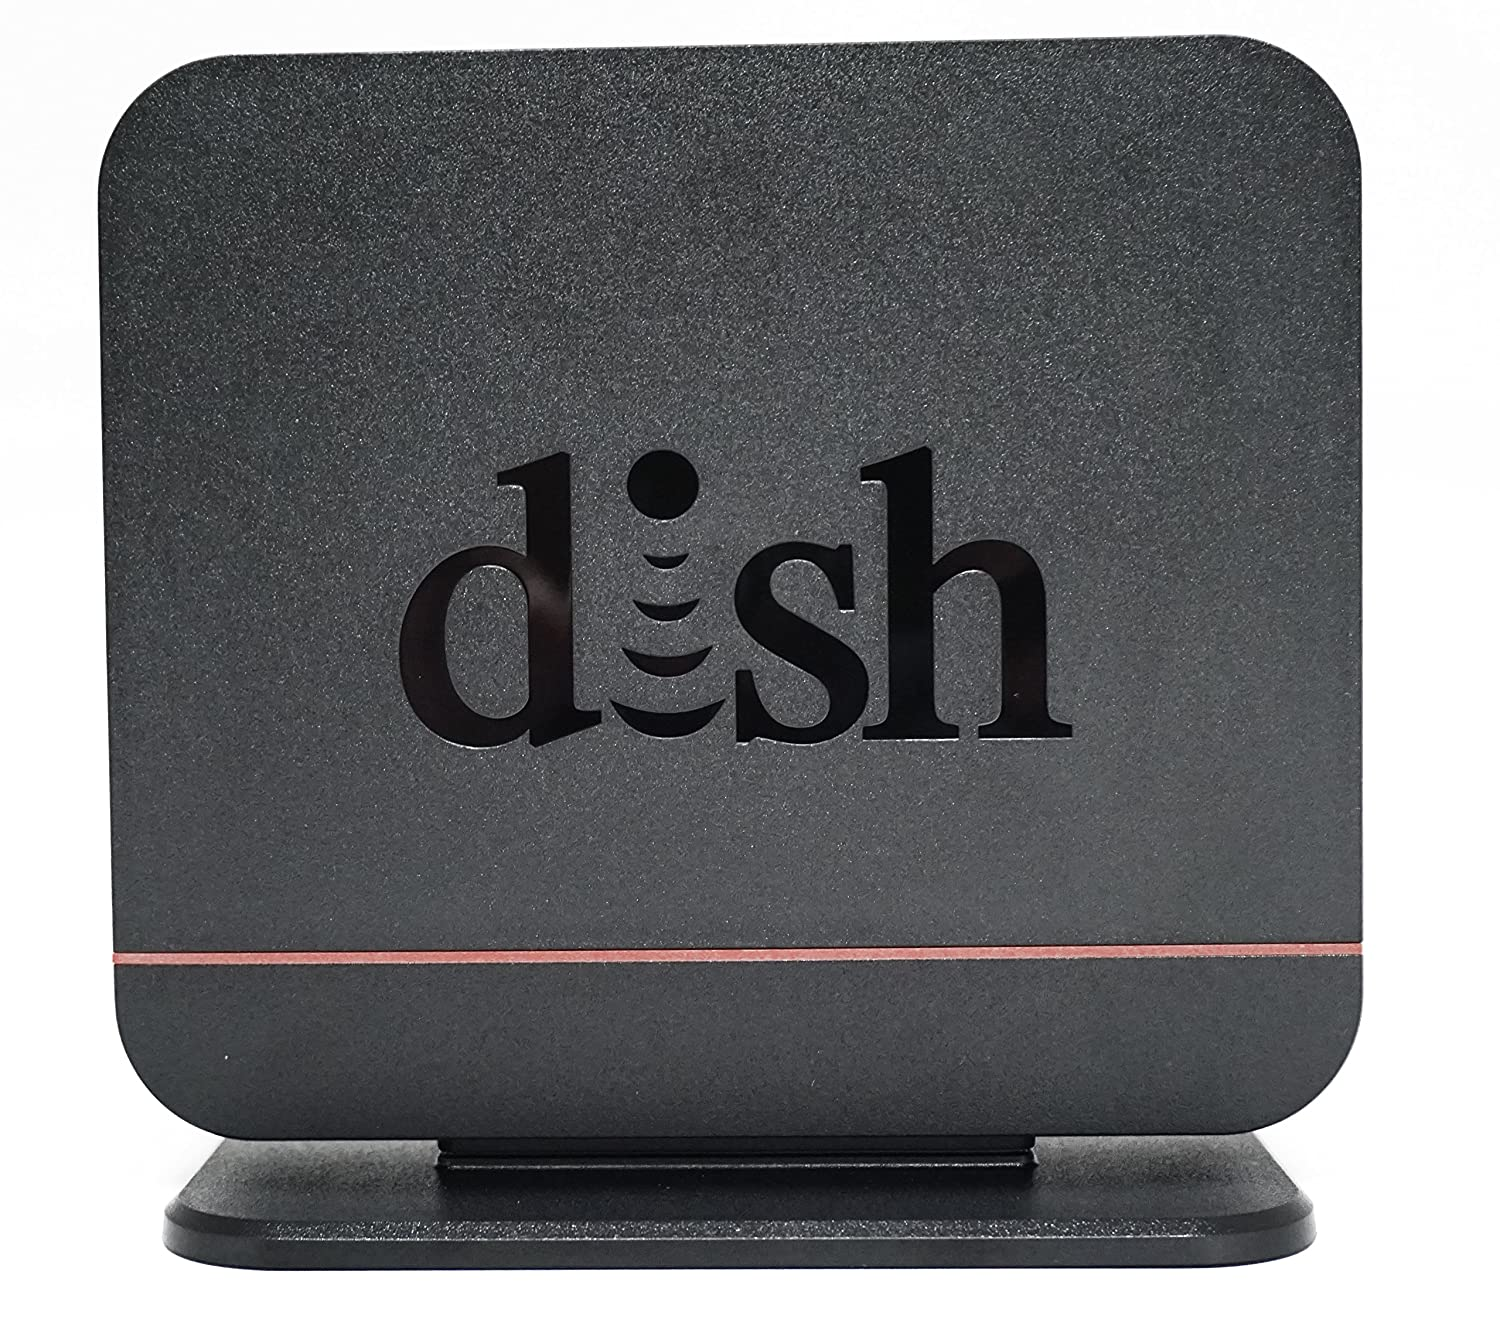 Attractive Dish 722k Receiver Wiring Diagrams Motif - Everything You ...